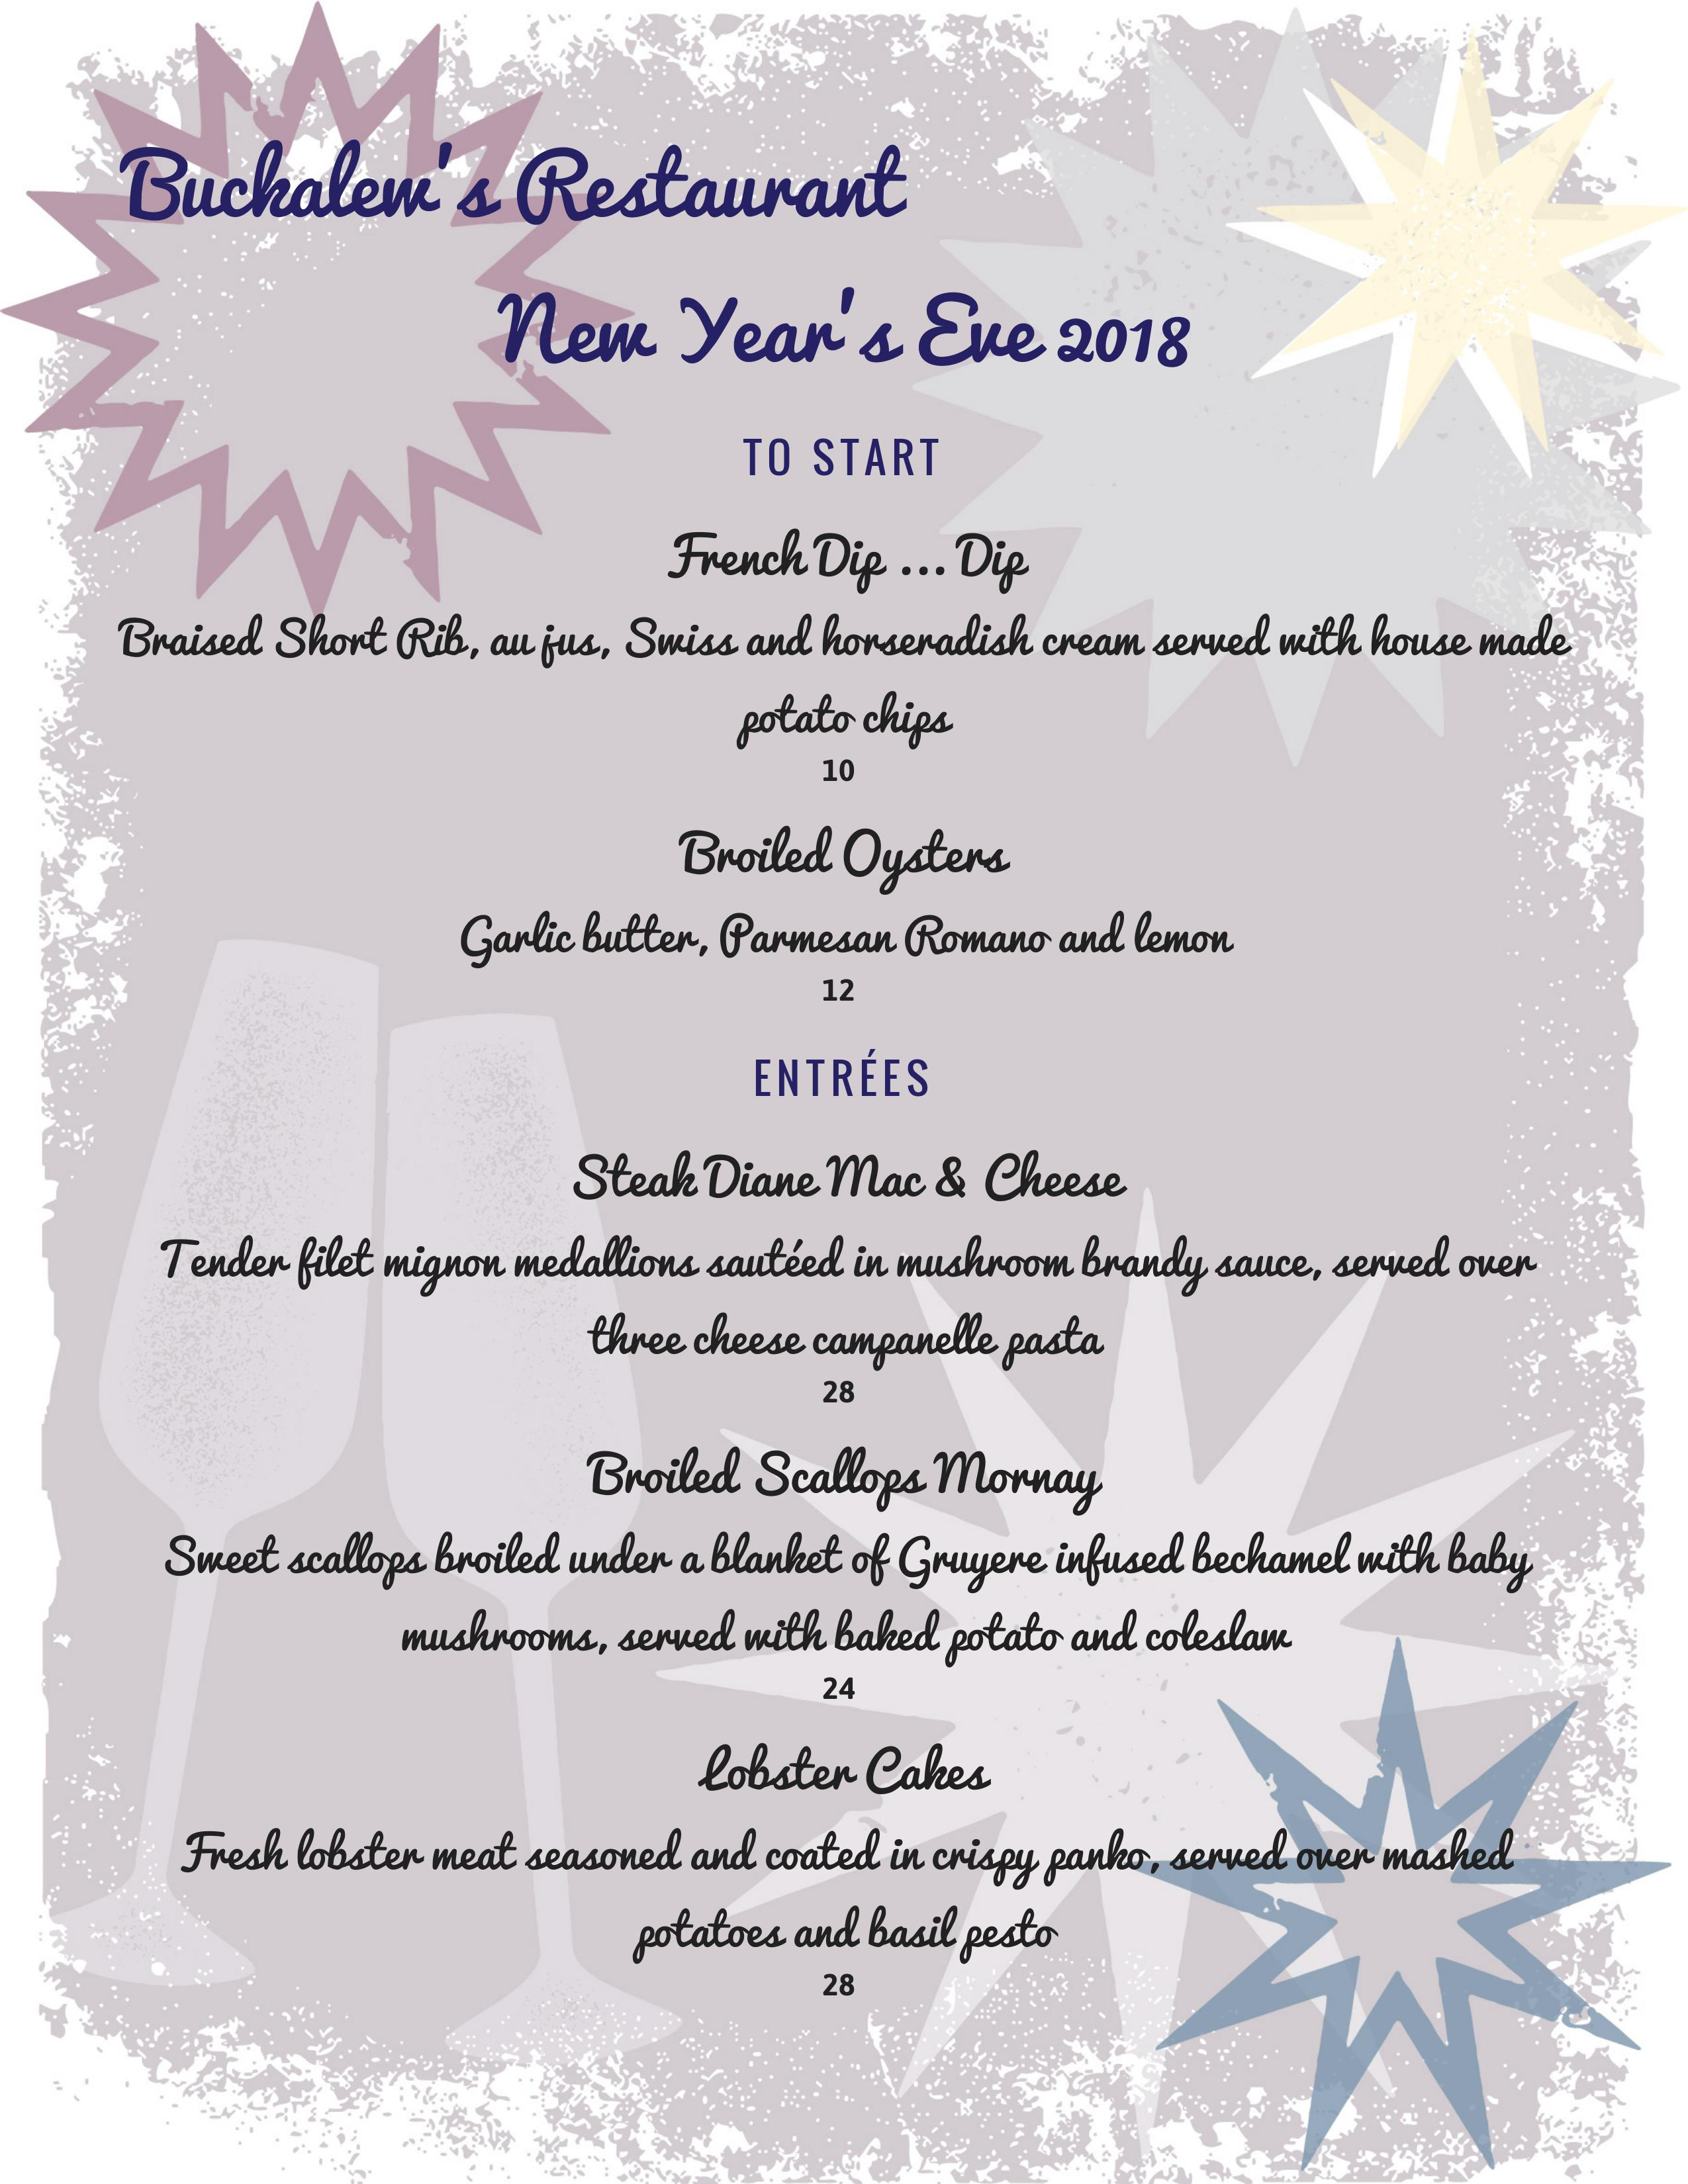 Buckalew's Restaurant , New Year's Eve 2018!  TO START:  French Dip |  Braised Short Rib, au jus, Swiss and horseradish cream served with house made potato chips. $10.00.  Broiled Oysters | Garlic butter, Parmesan Romano and lemon. $12.00.  ENTRÉES  Steak Diane Mac & Cheese | Tender filet mignon medallions sautéed in mushroom brandy sauce, served over three cheese campanelle pasta. $28.00  Broiled Scallops Mornay | Sweet scallops broiled under a blanket of Gruyere infused bechamel with baby mushrooms, served with baked potato and coleslaw. $24.00.  Lobster Cakes | Fresh lobster meat seasoned and coated in crispy panko, served over mashed potatoes and basil pesto. $28.00.